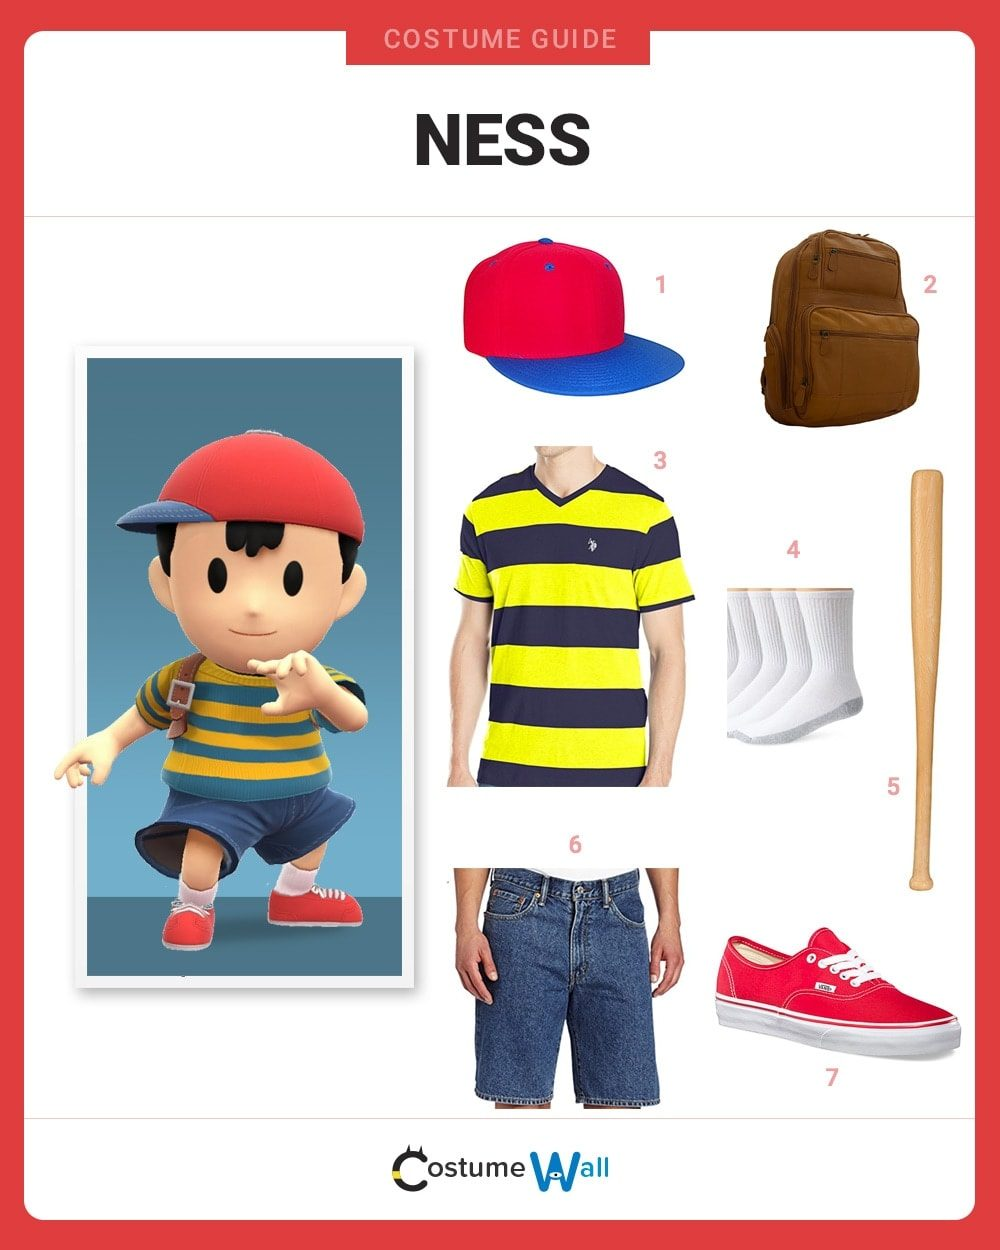 ness costume guide